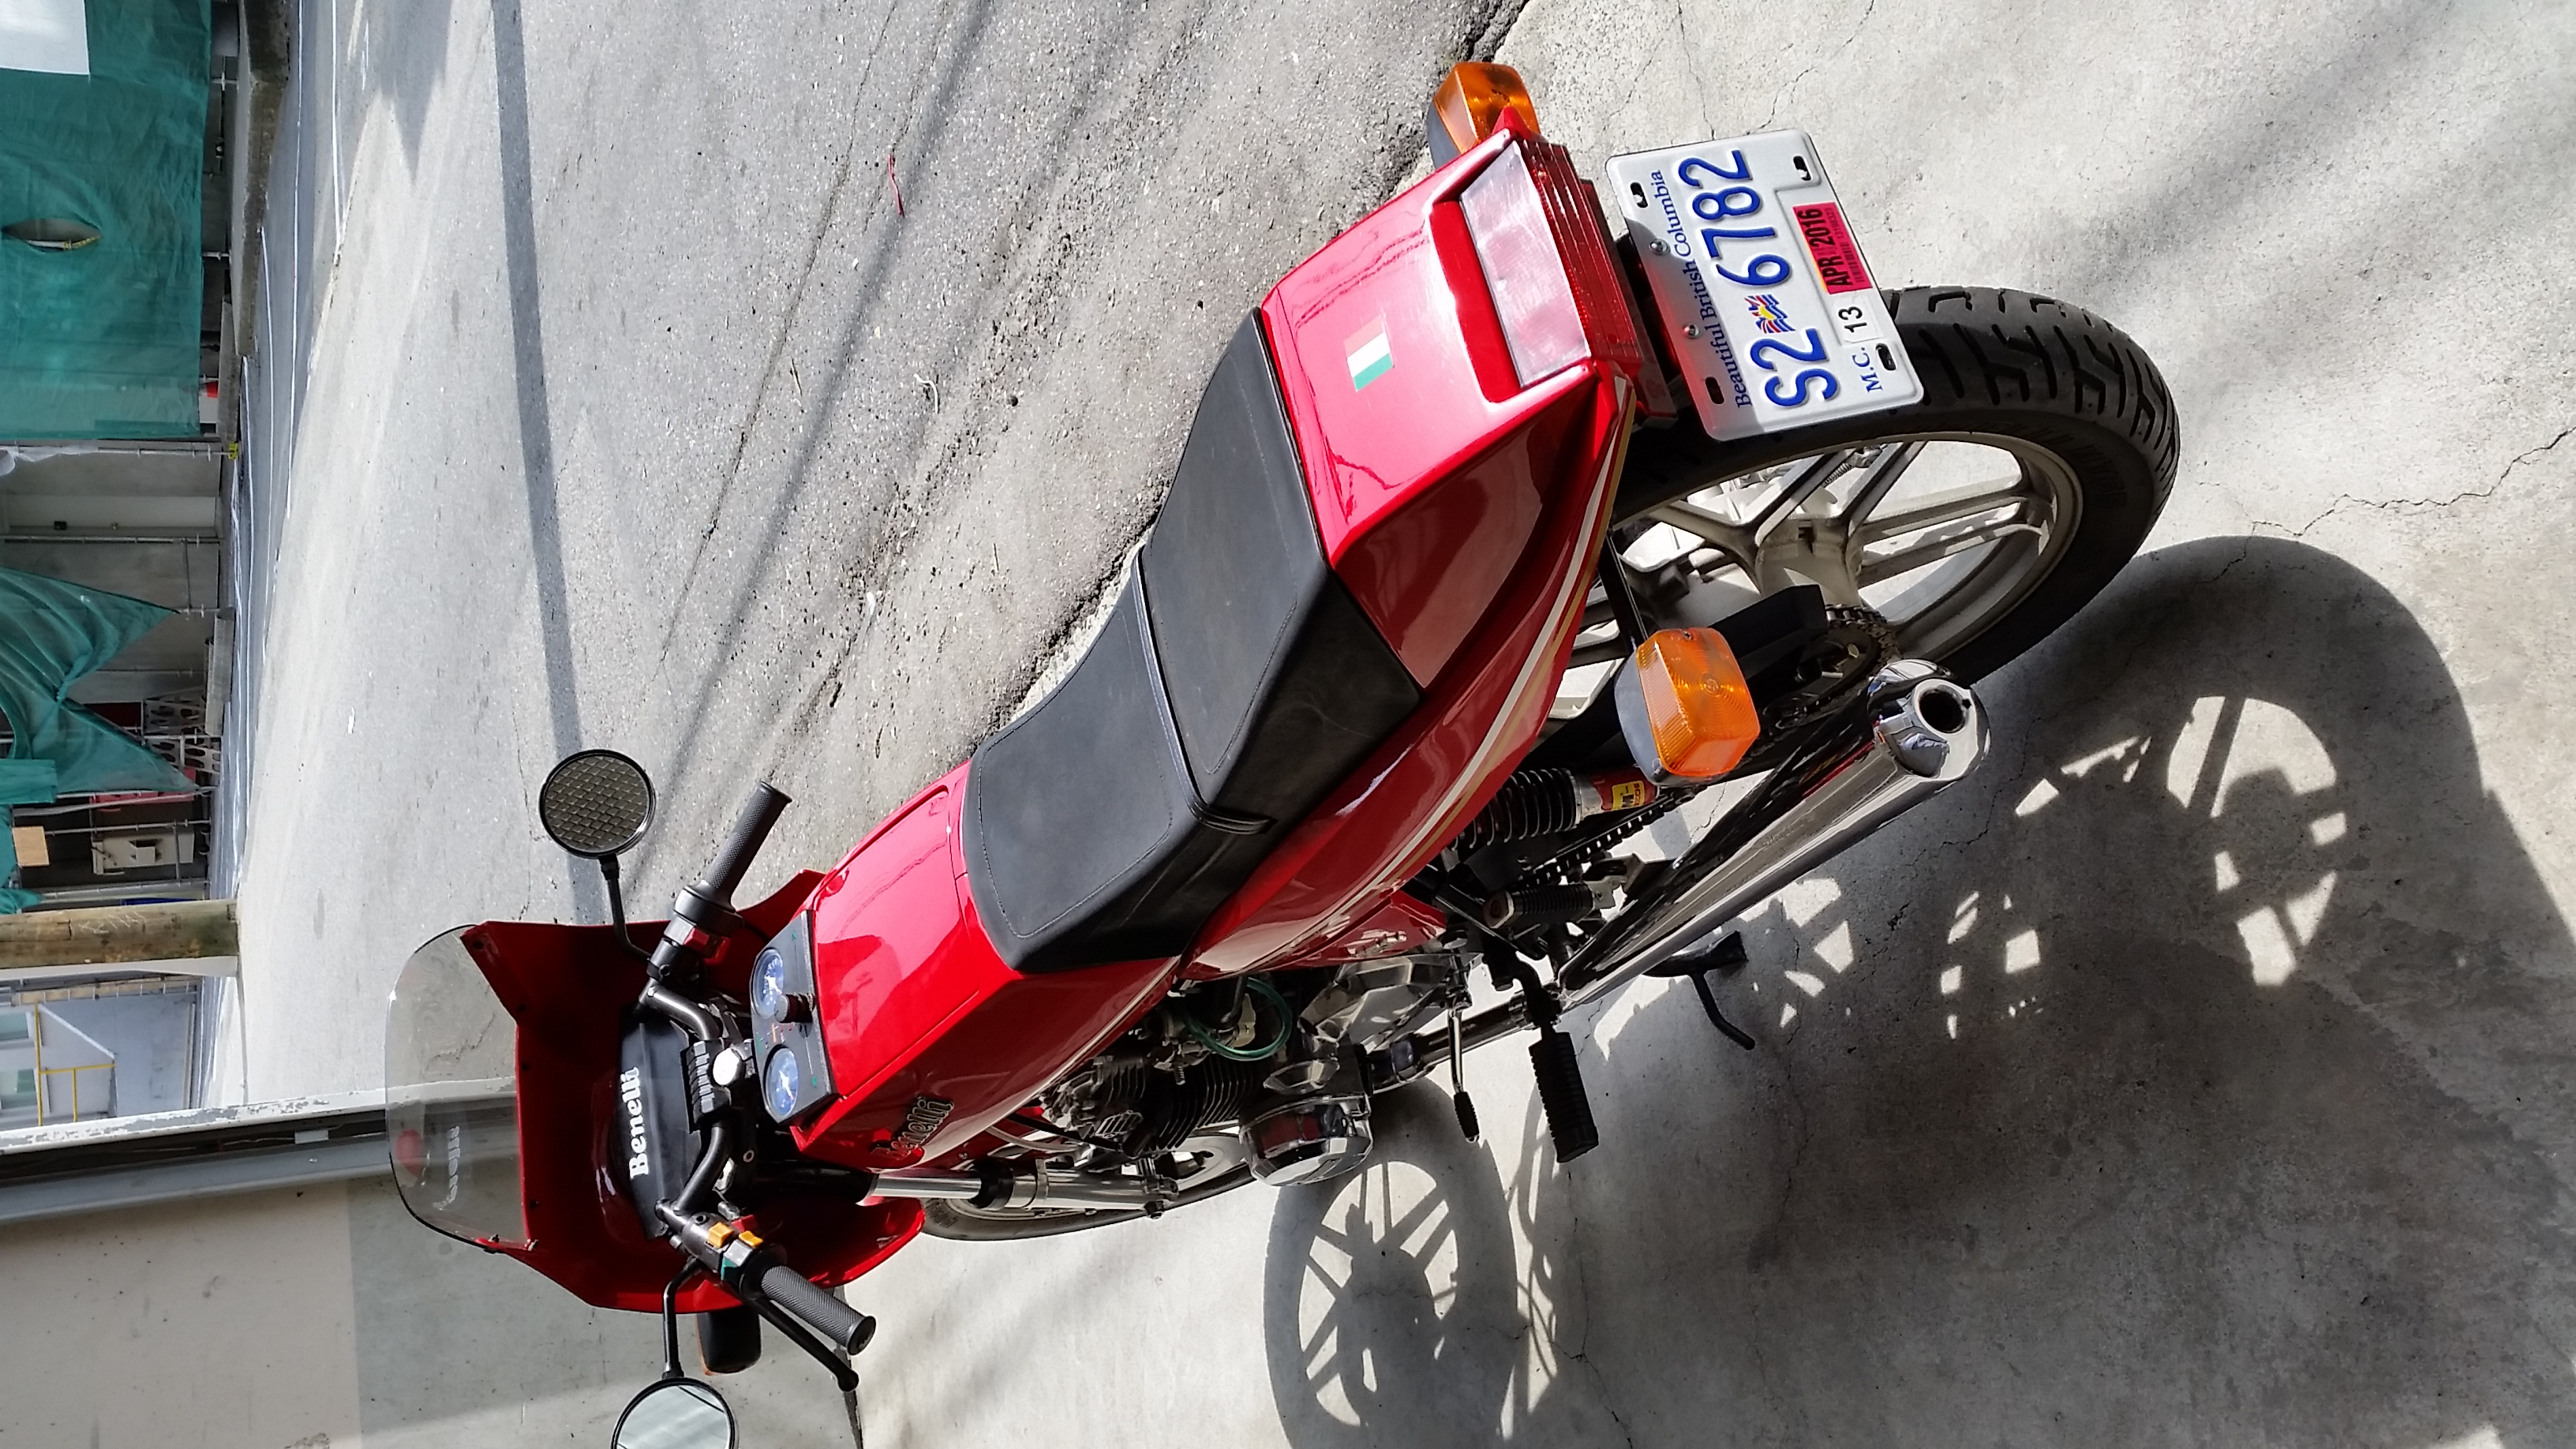 Benelli 254 owner: interested to know of others-20150418_135304.jpg